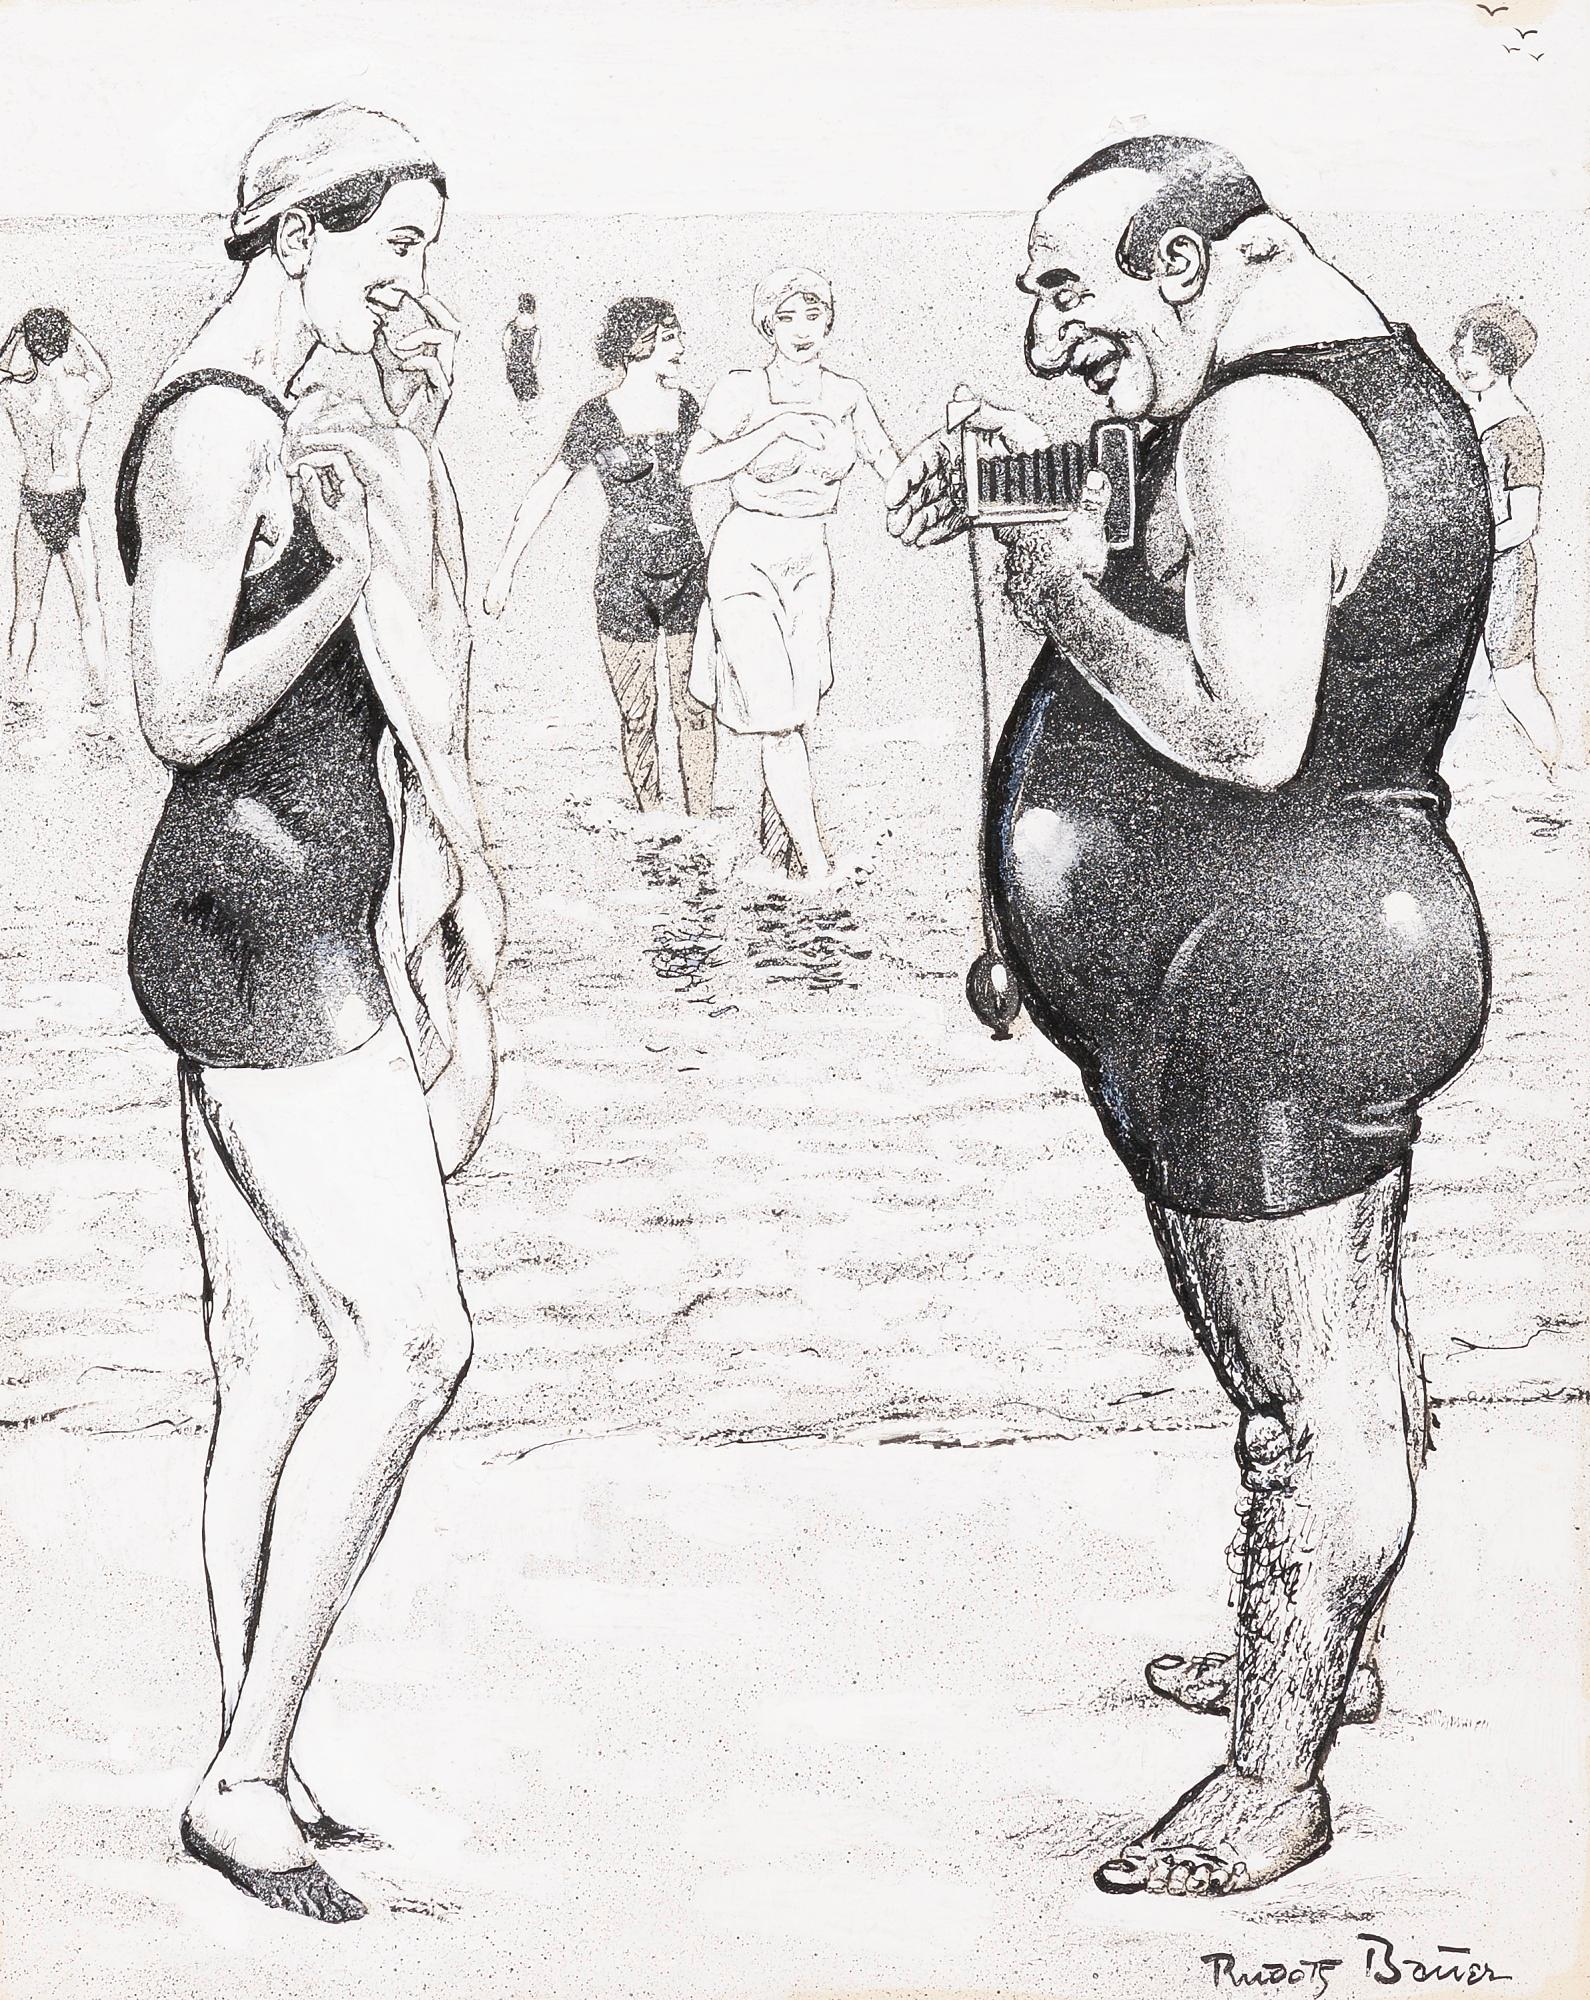 At the beach: A pair of drawings by Rudolf Bauer